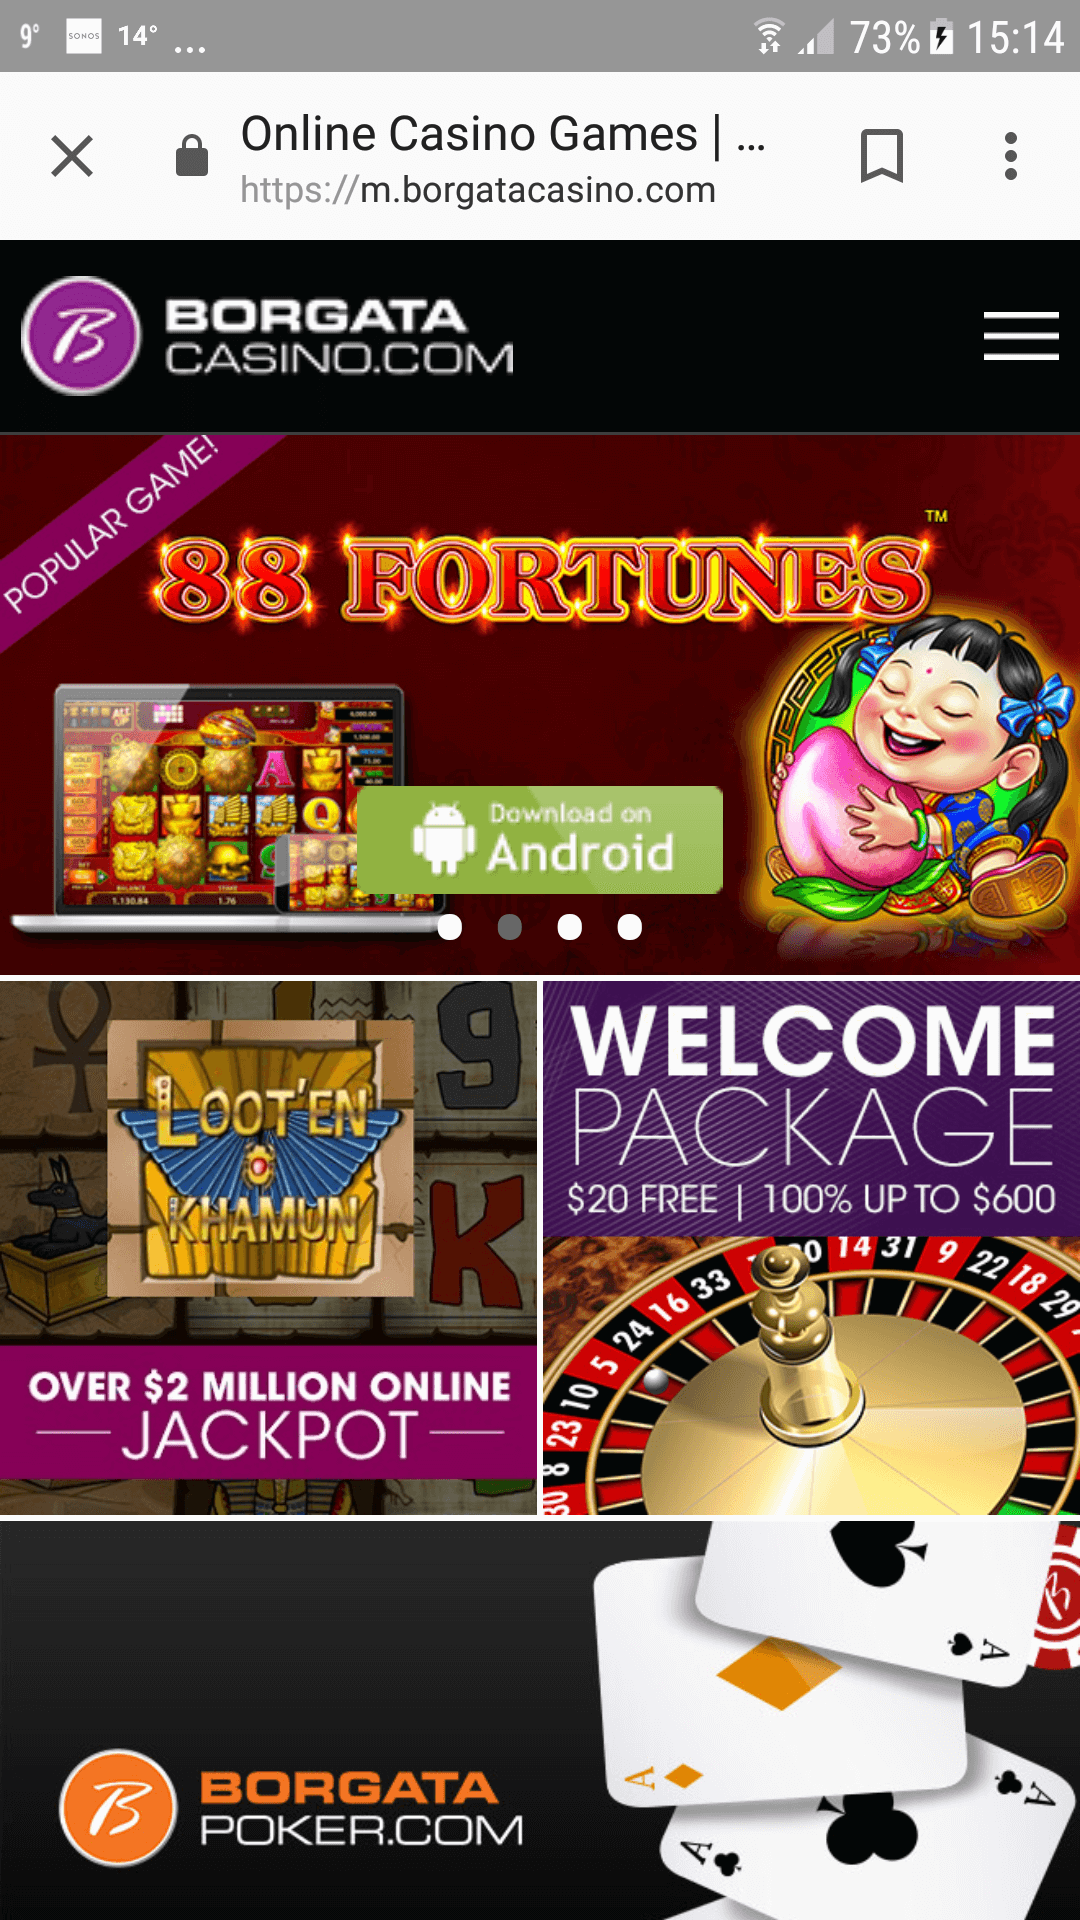 Borgata Online Casino Review Real Comments From Real Players